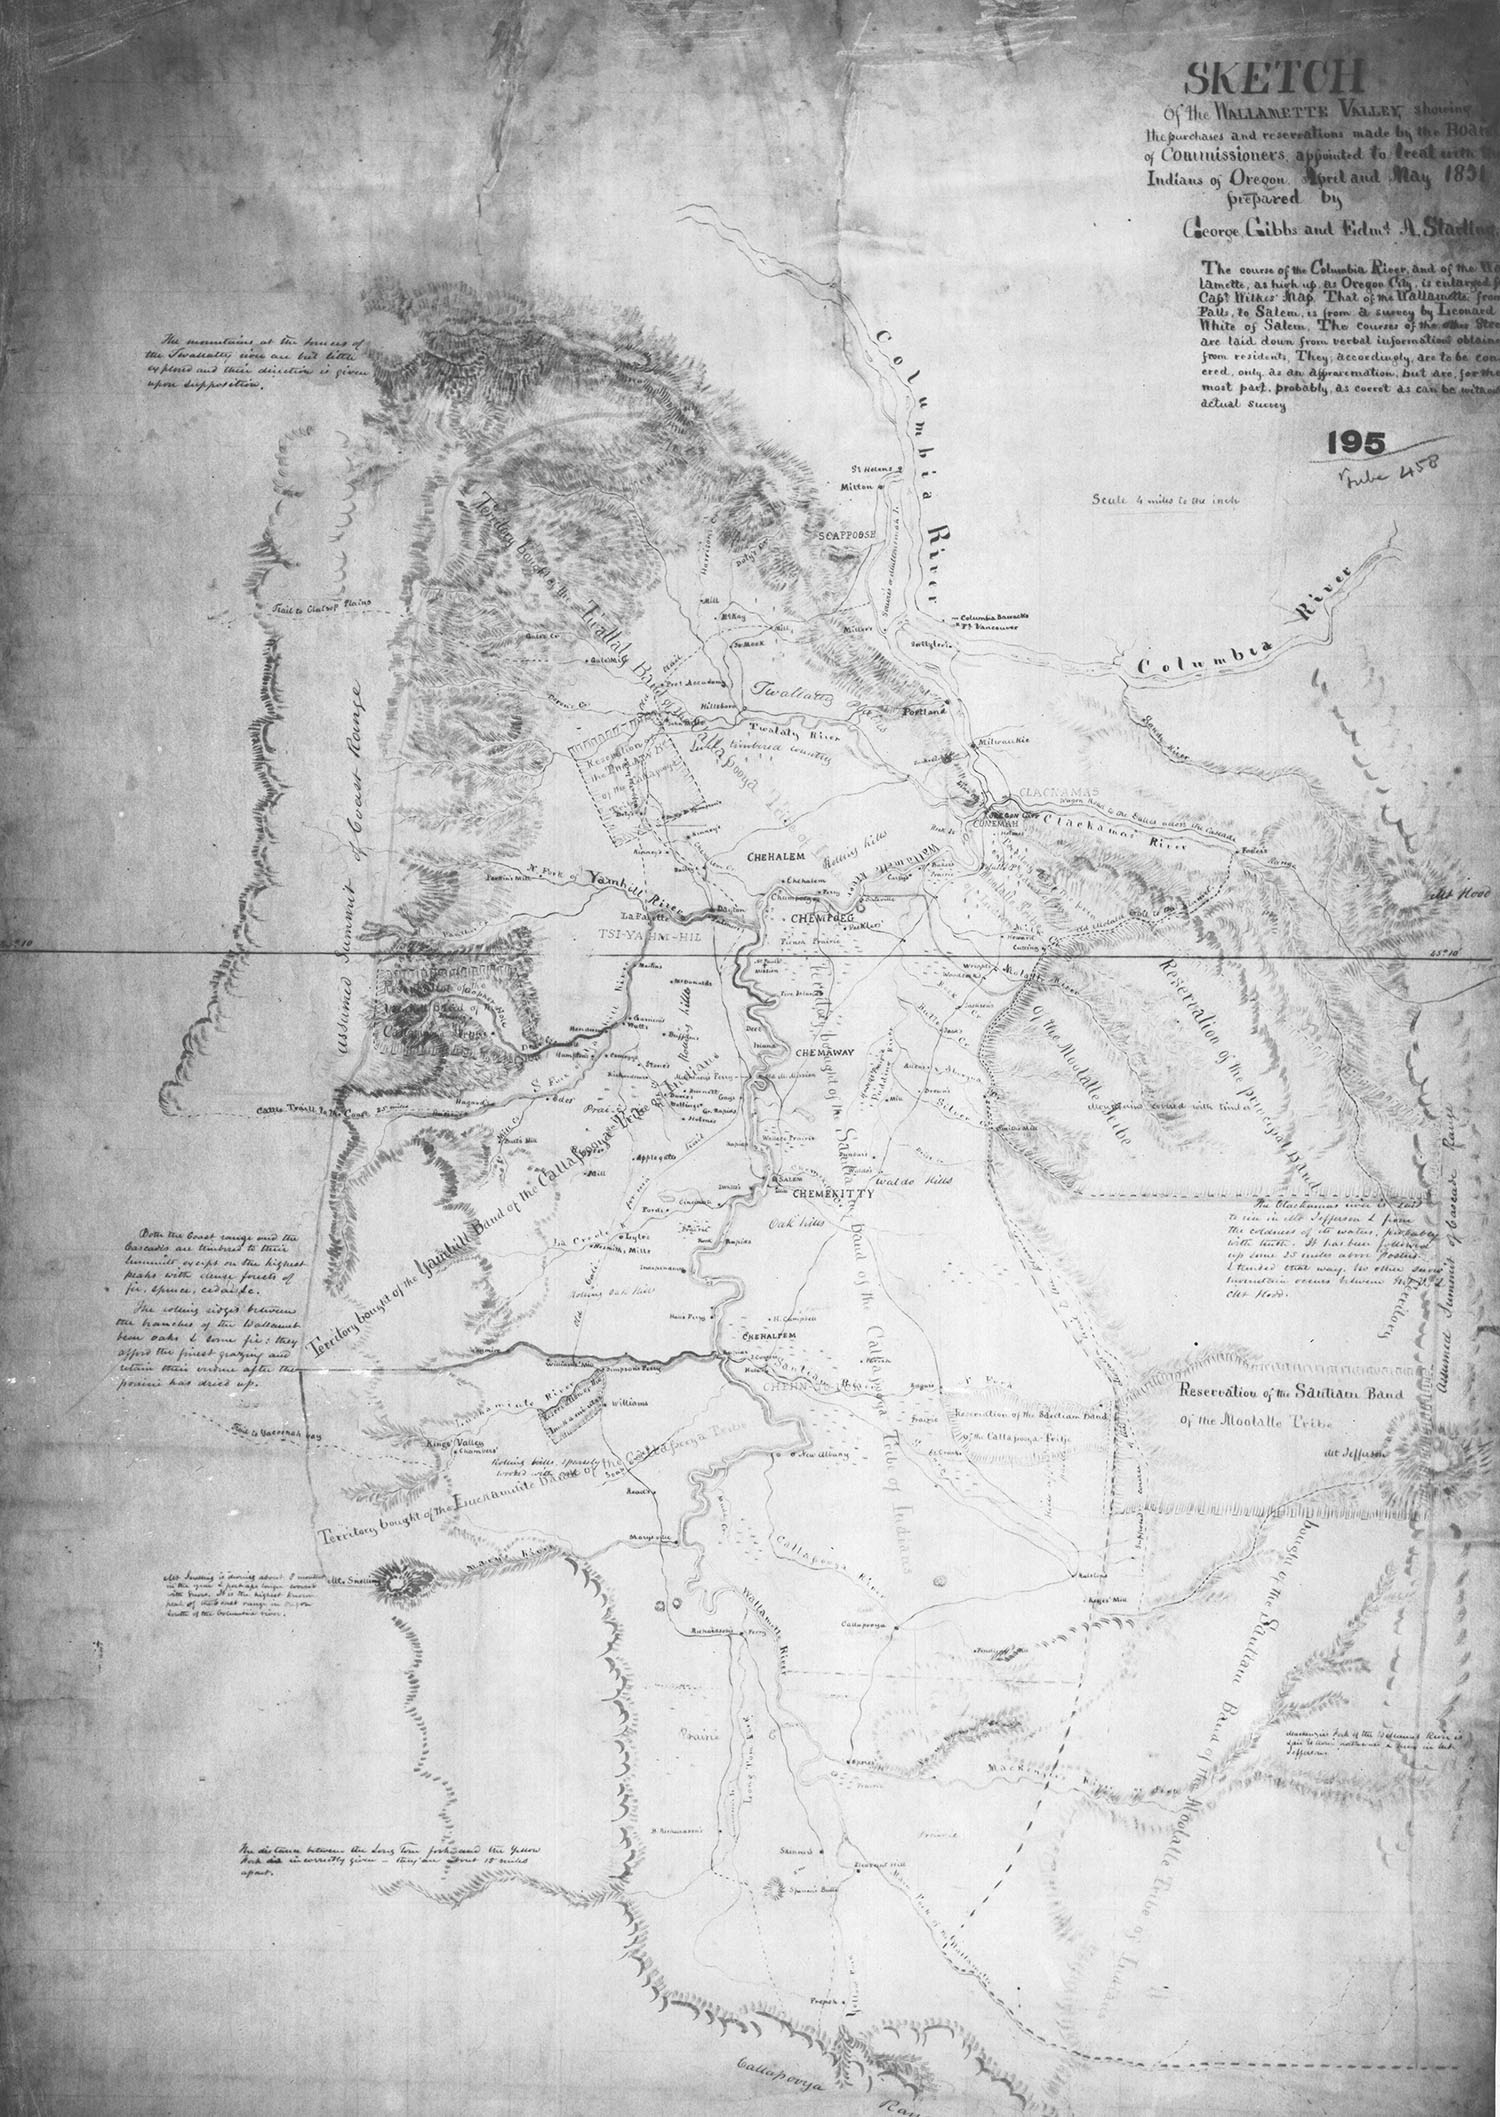 Sketch of the Wallamette Valley, George Gibbs and Edmund Starling, 1851